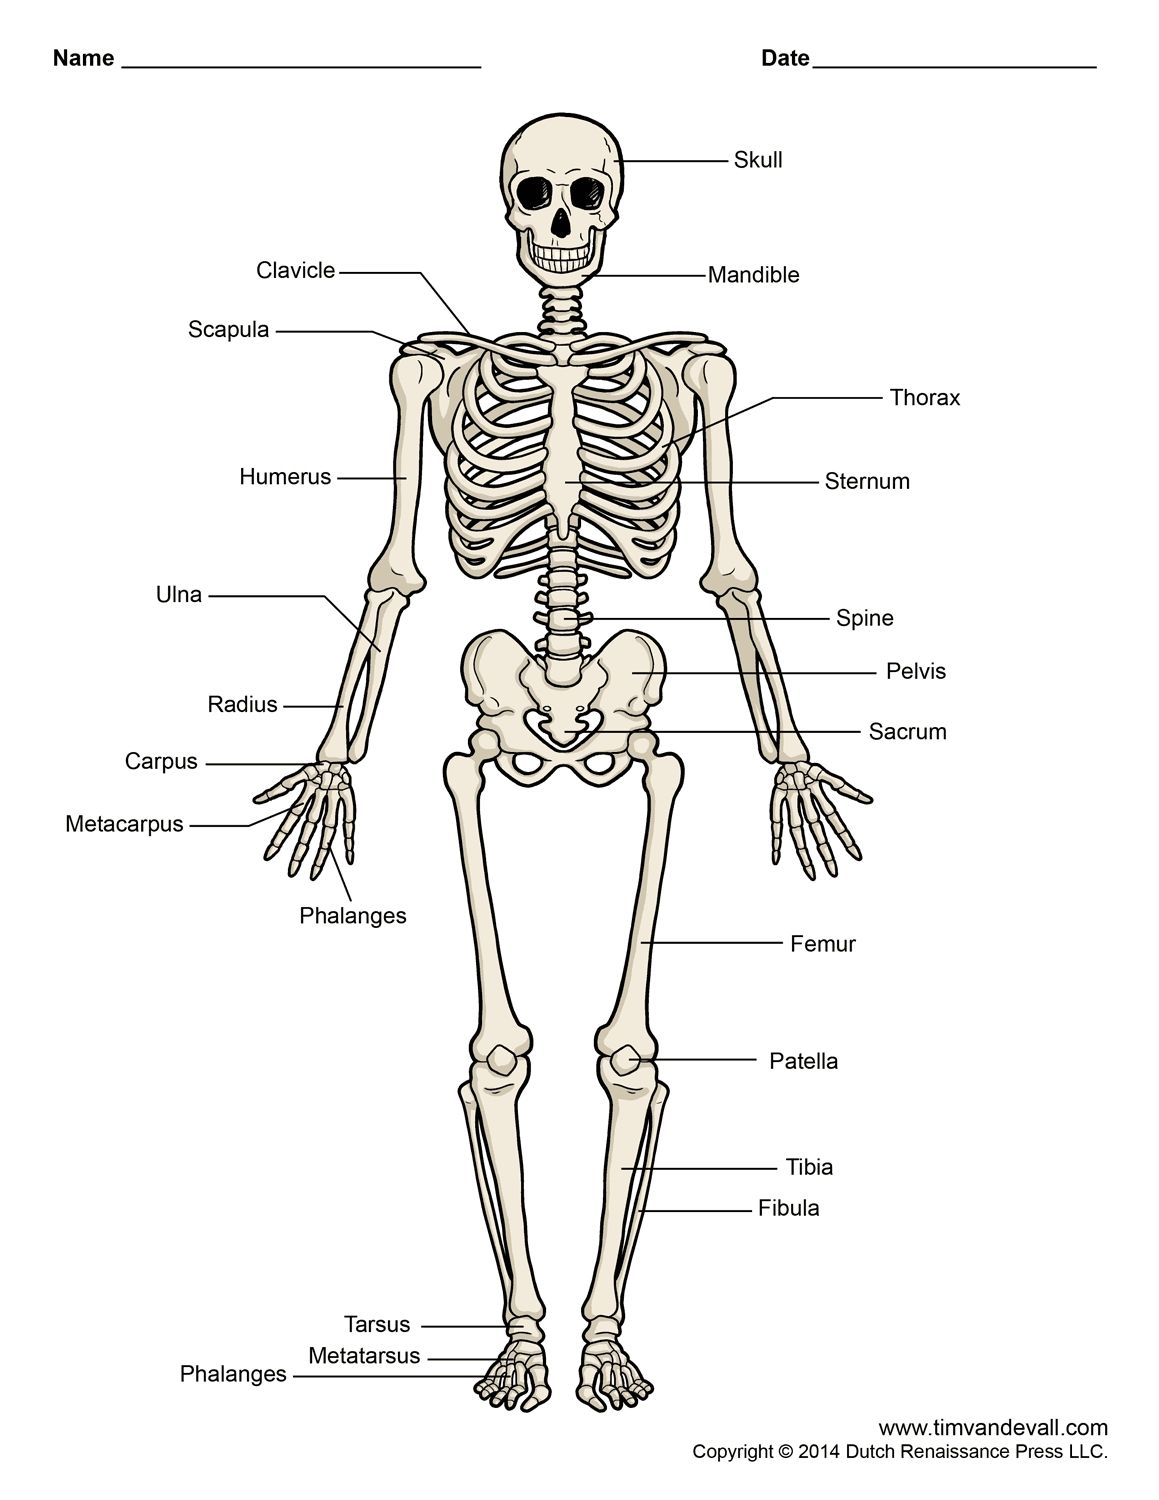 body diagram unlabeled diagram of human skeleton labeled printable human skeleton ...